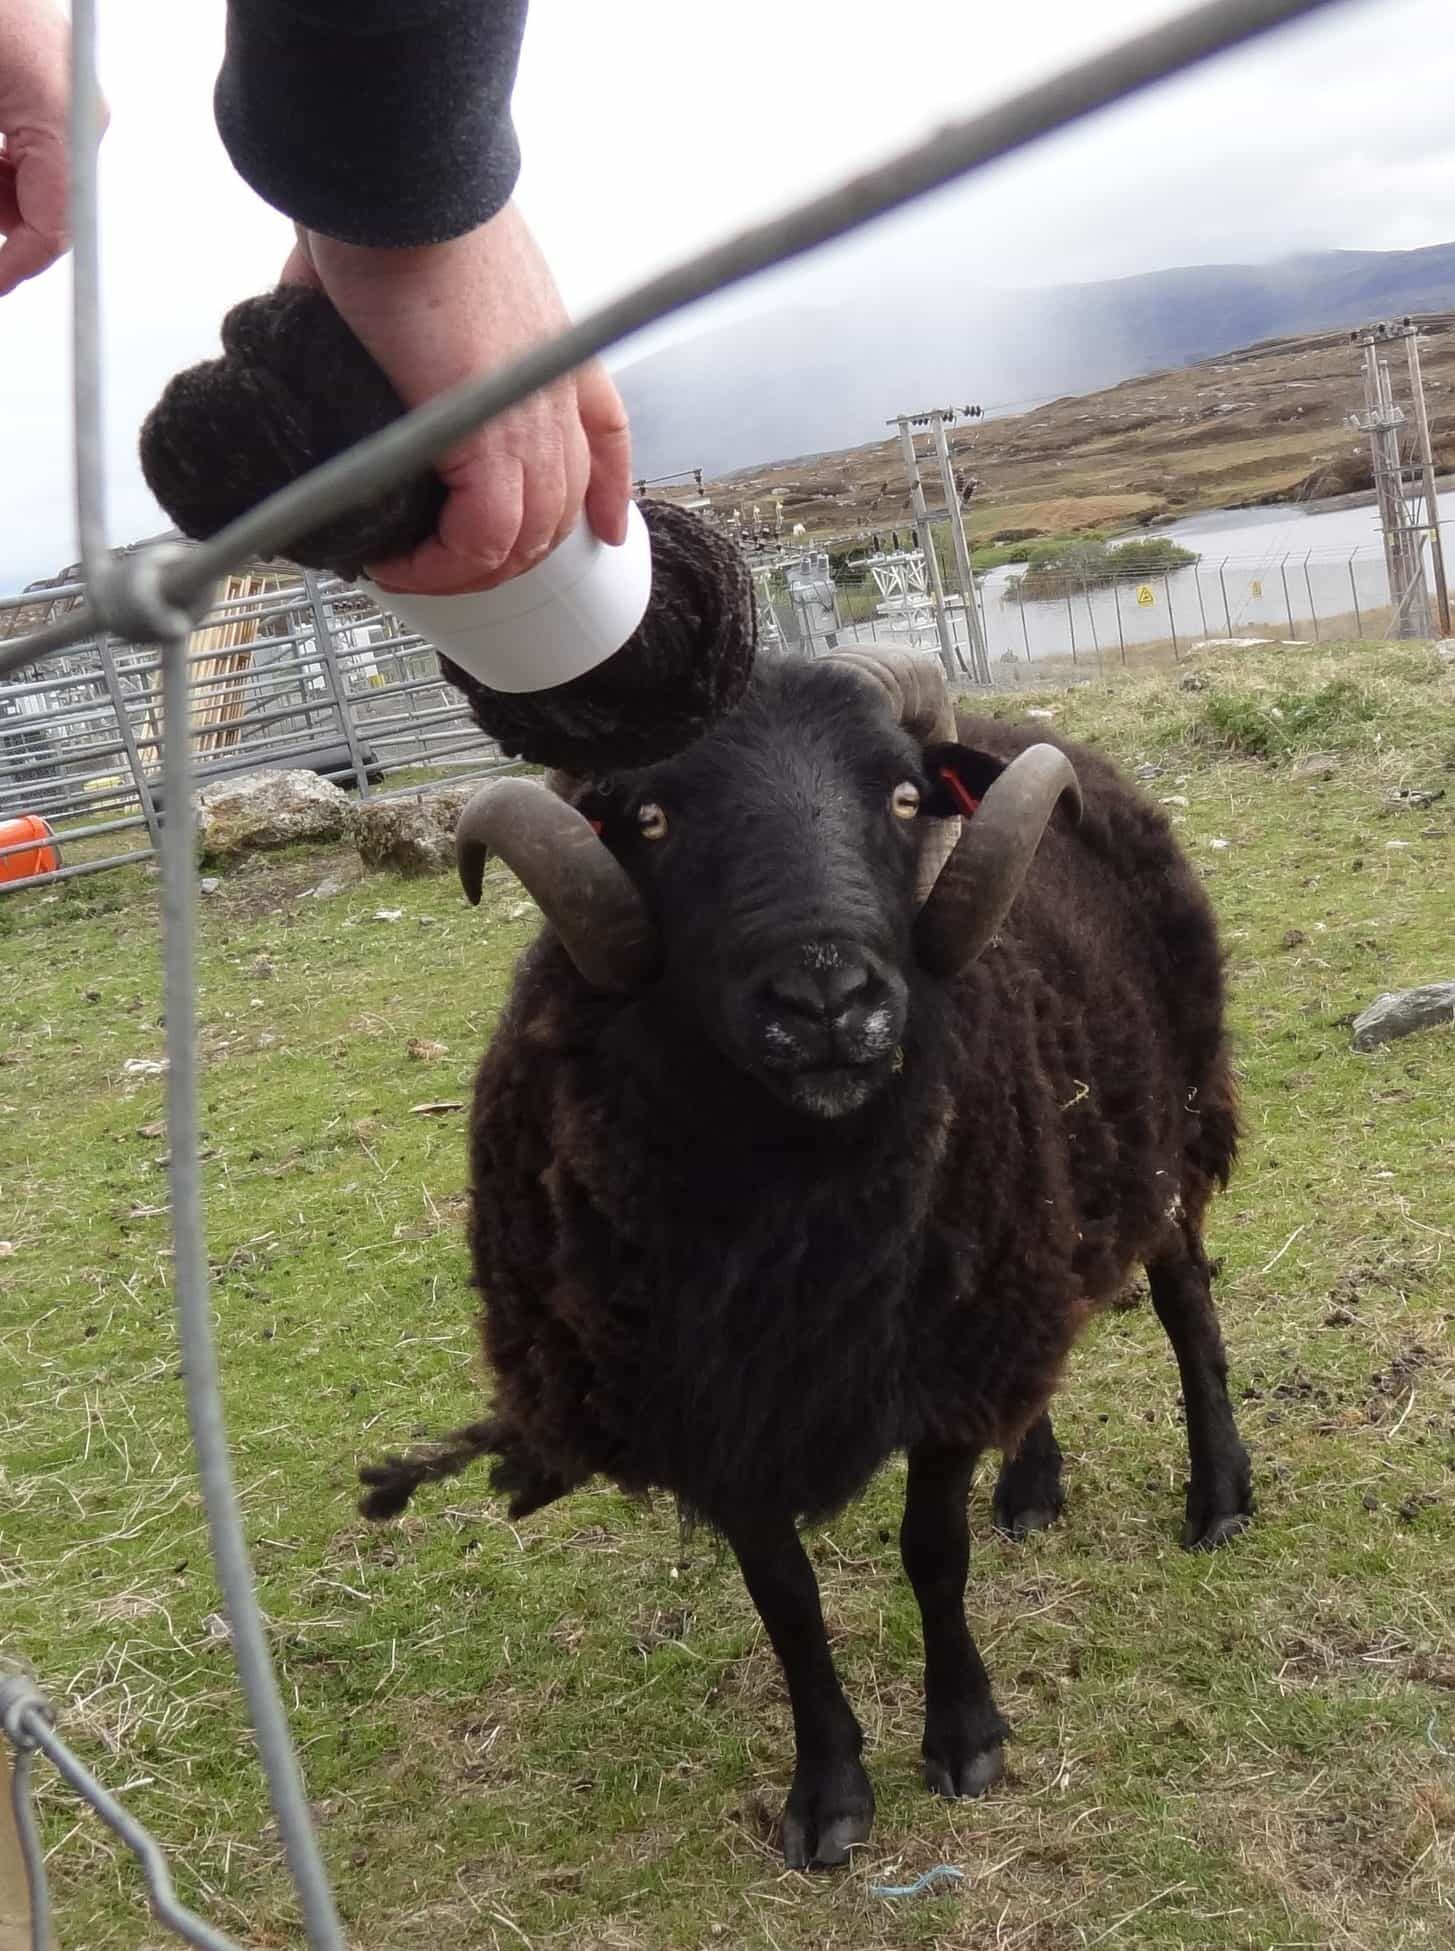 A Black Welsh Mountain Ram in a field looks at a skein of yarn made from his fleece